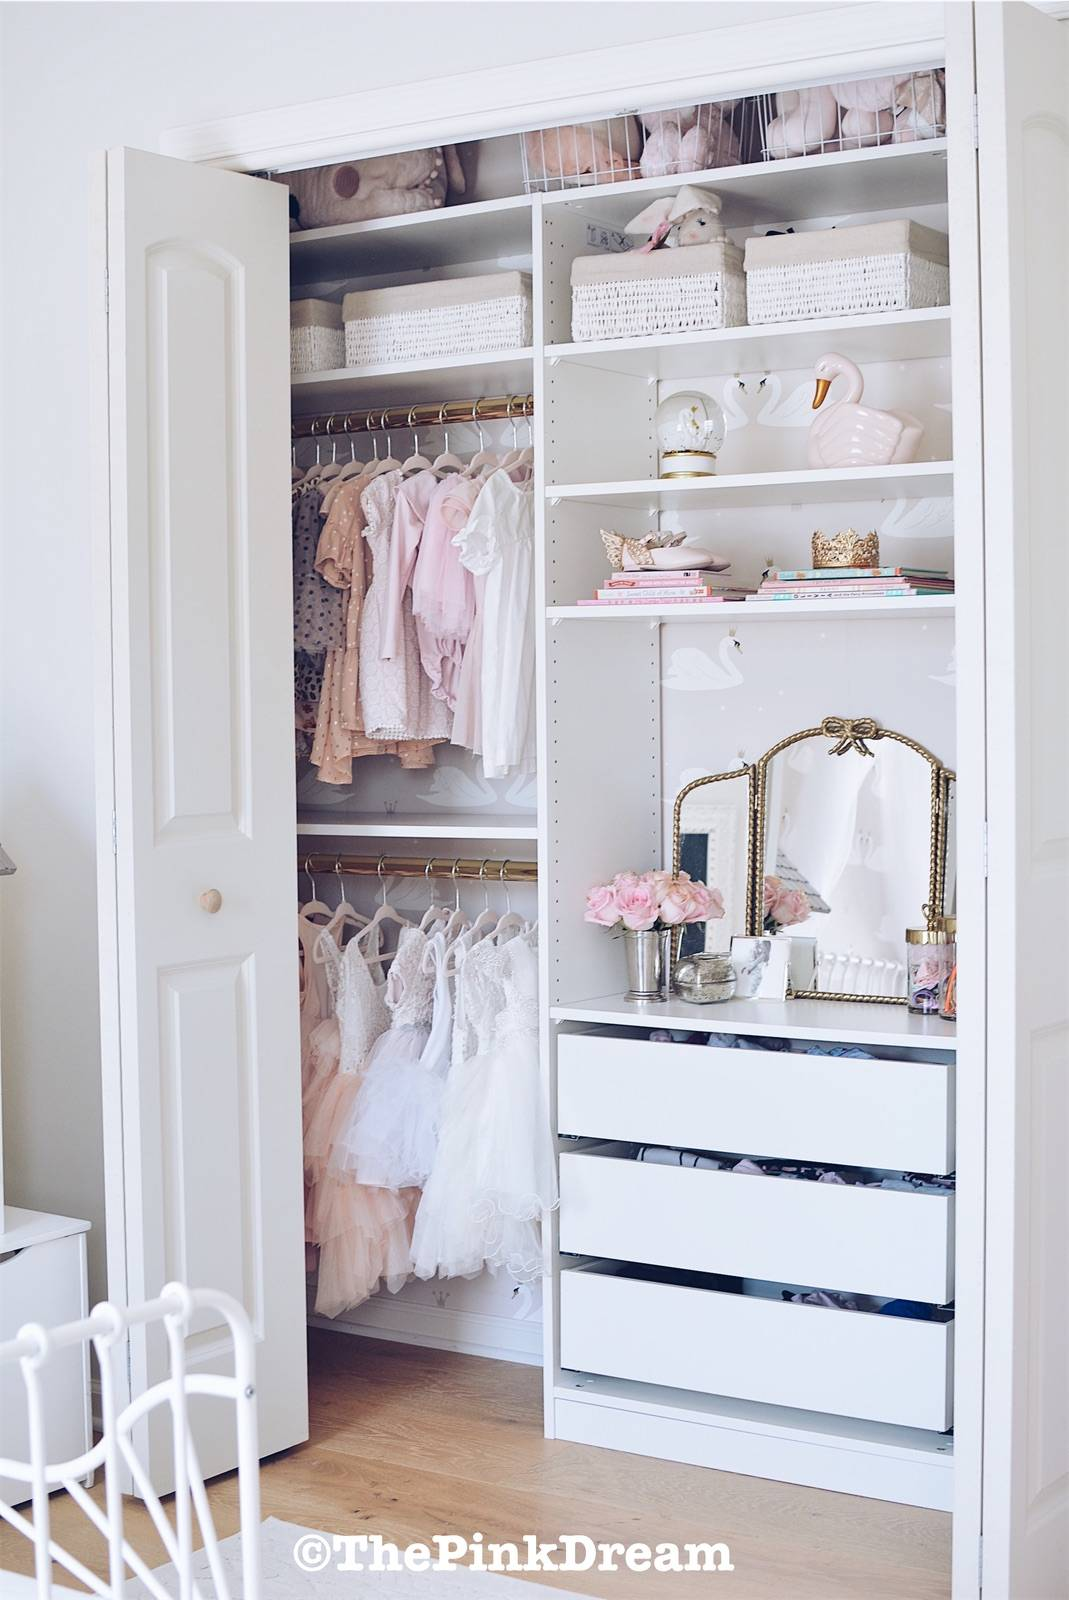 Ikea Pax Hack How To Customize A Small Closet With The System Pink Dream